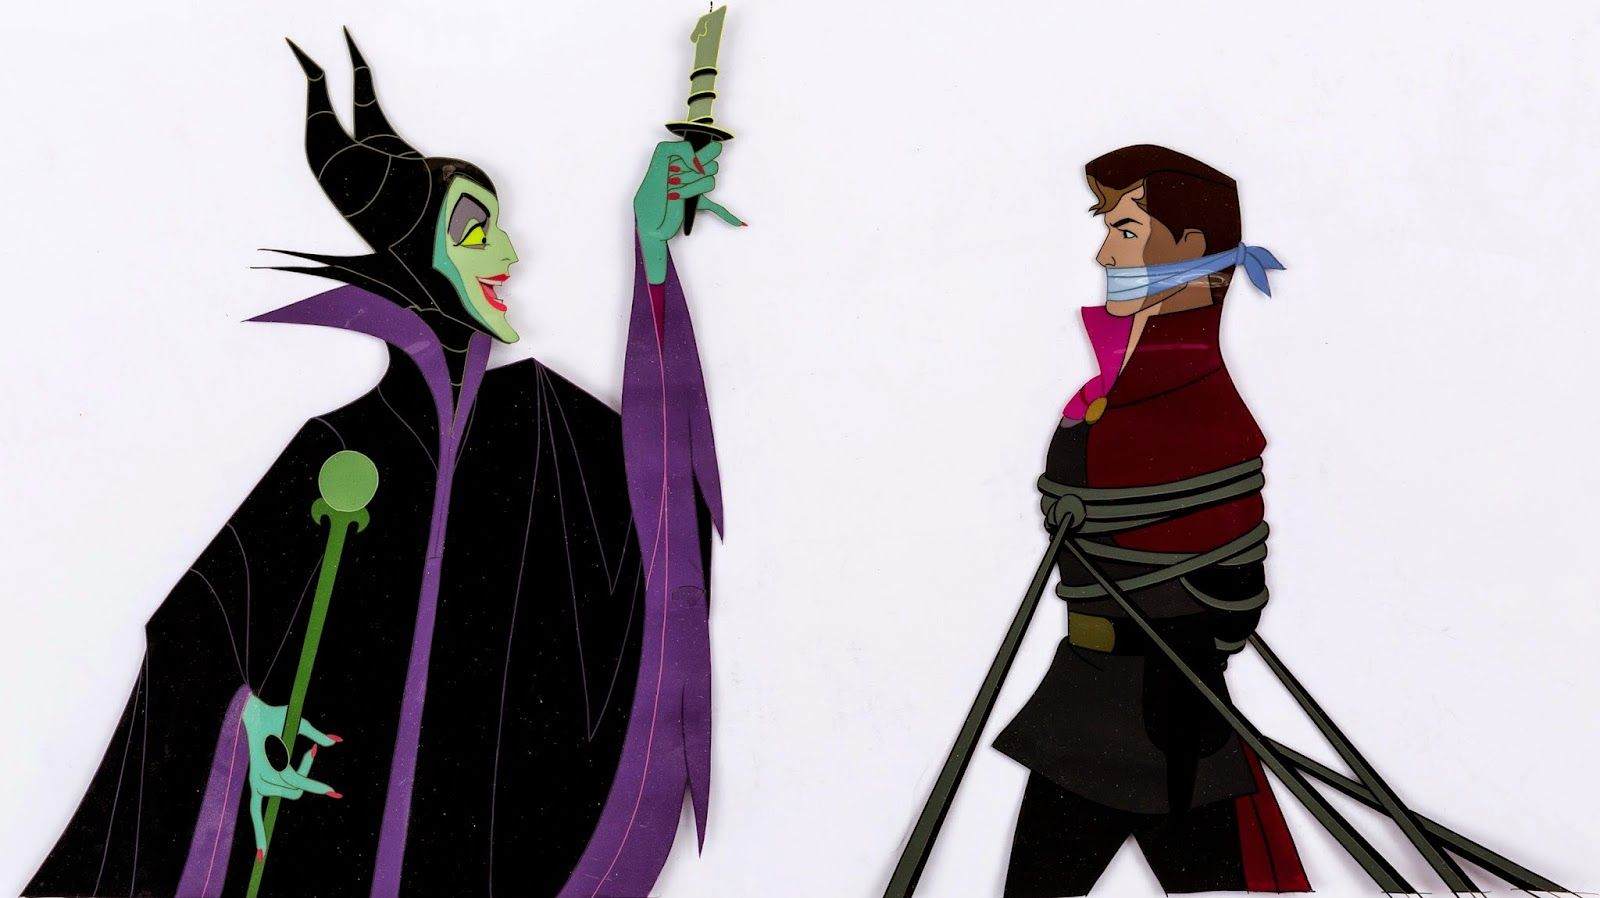 repainted maleficent and prince - photo #23